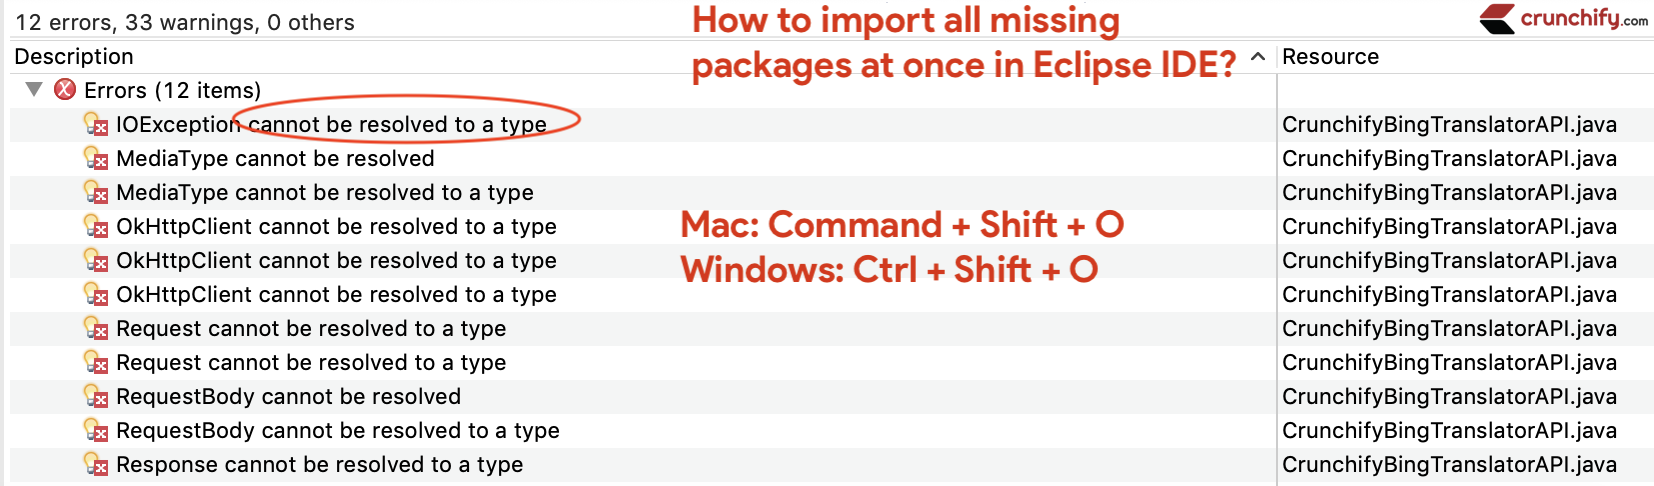 Import all missing packages at once in Eclipse IDE - Crunchify Tips